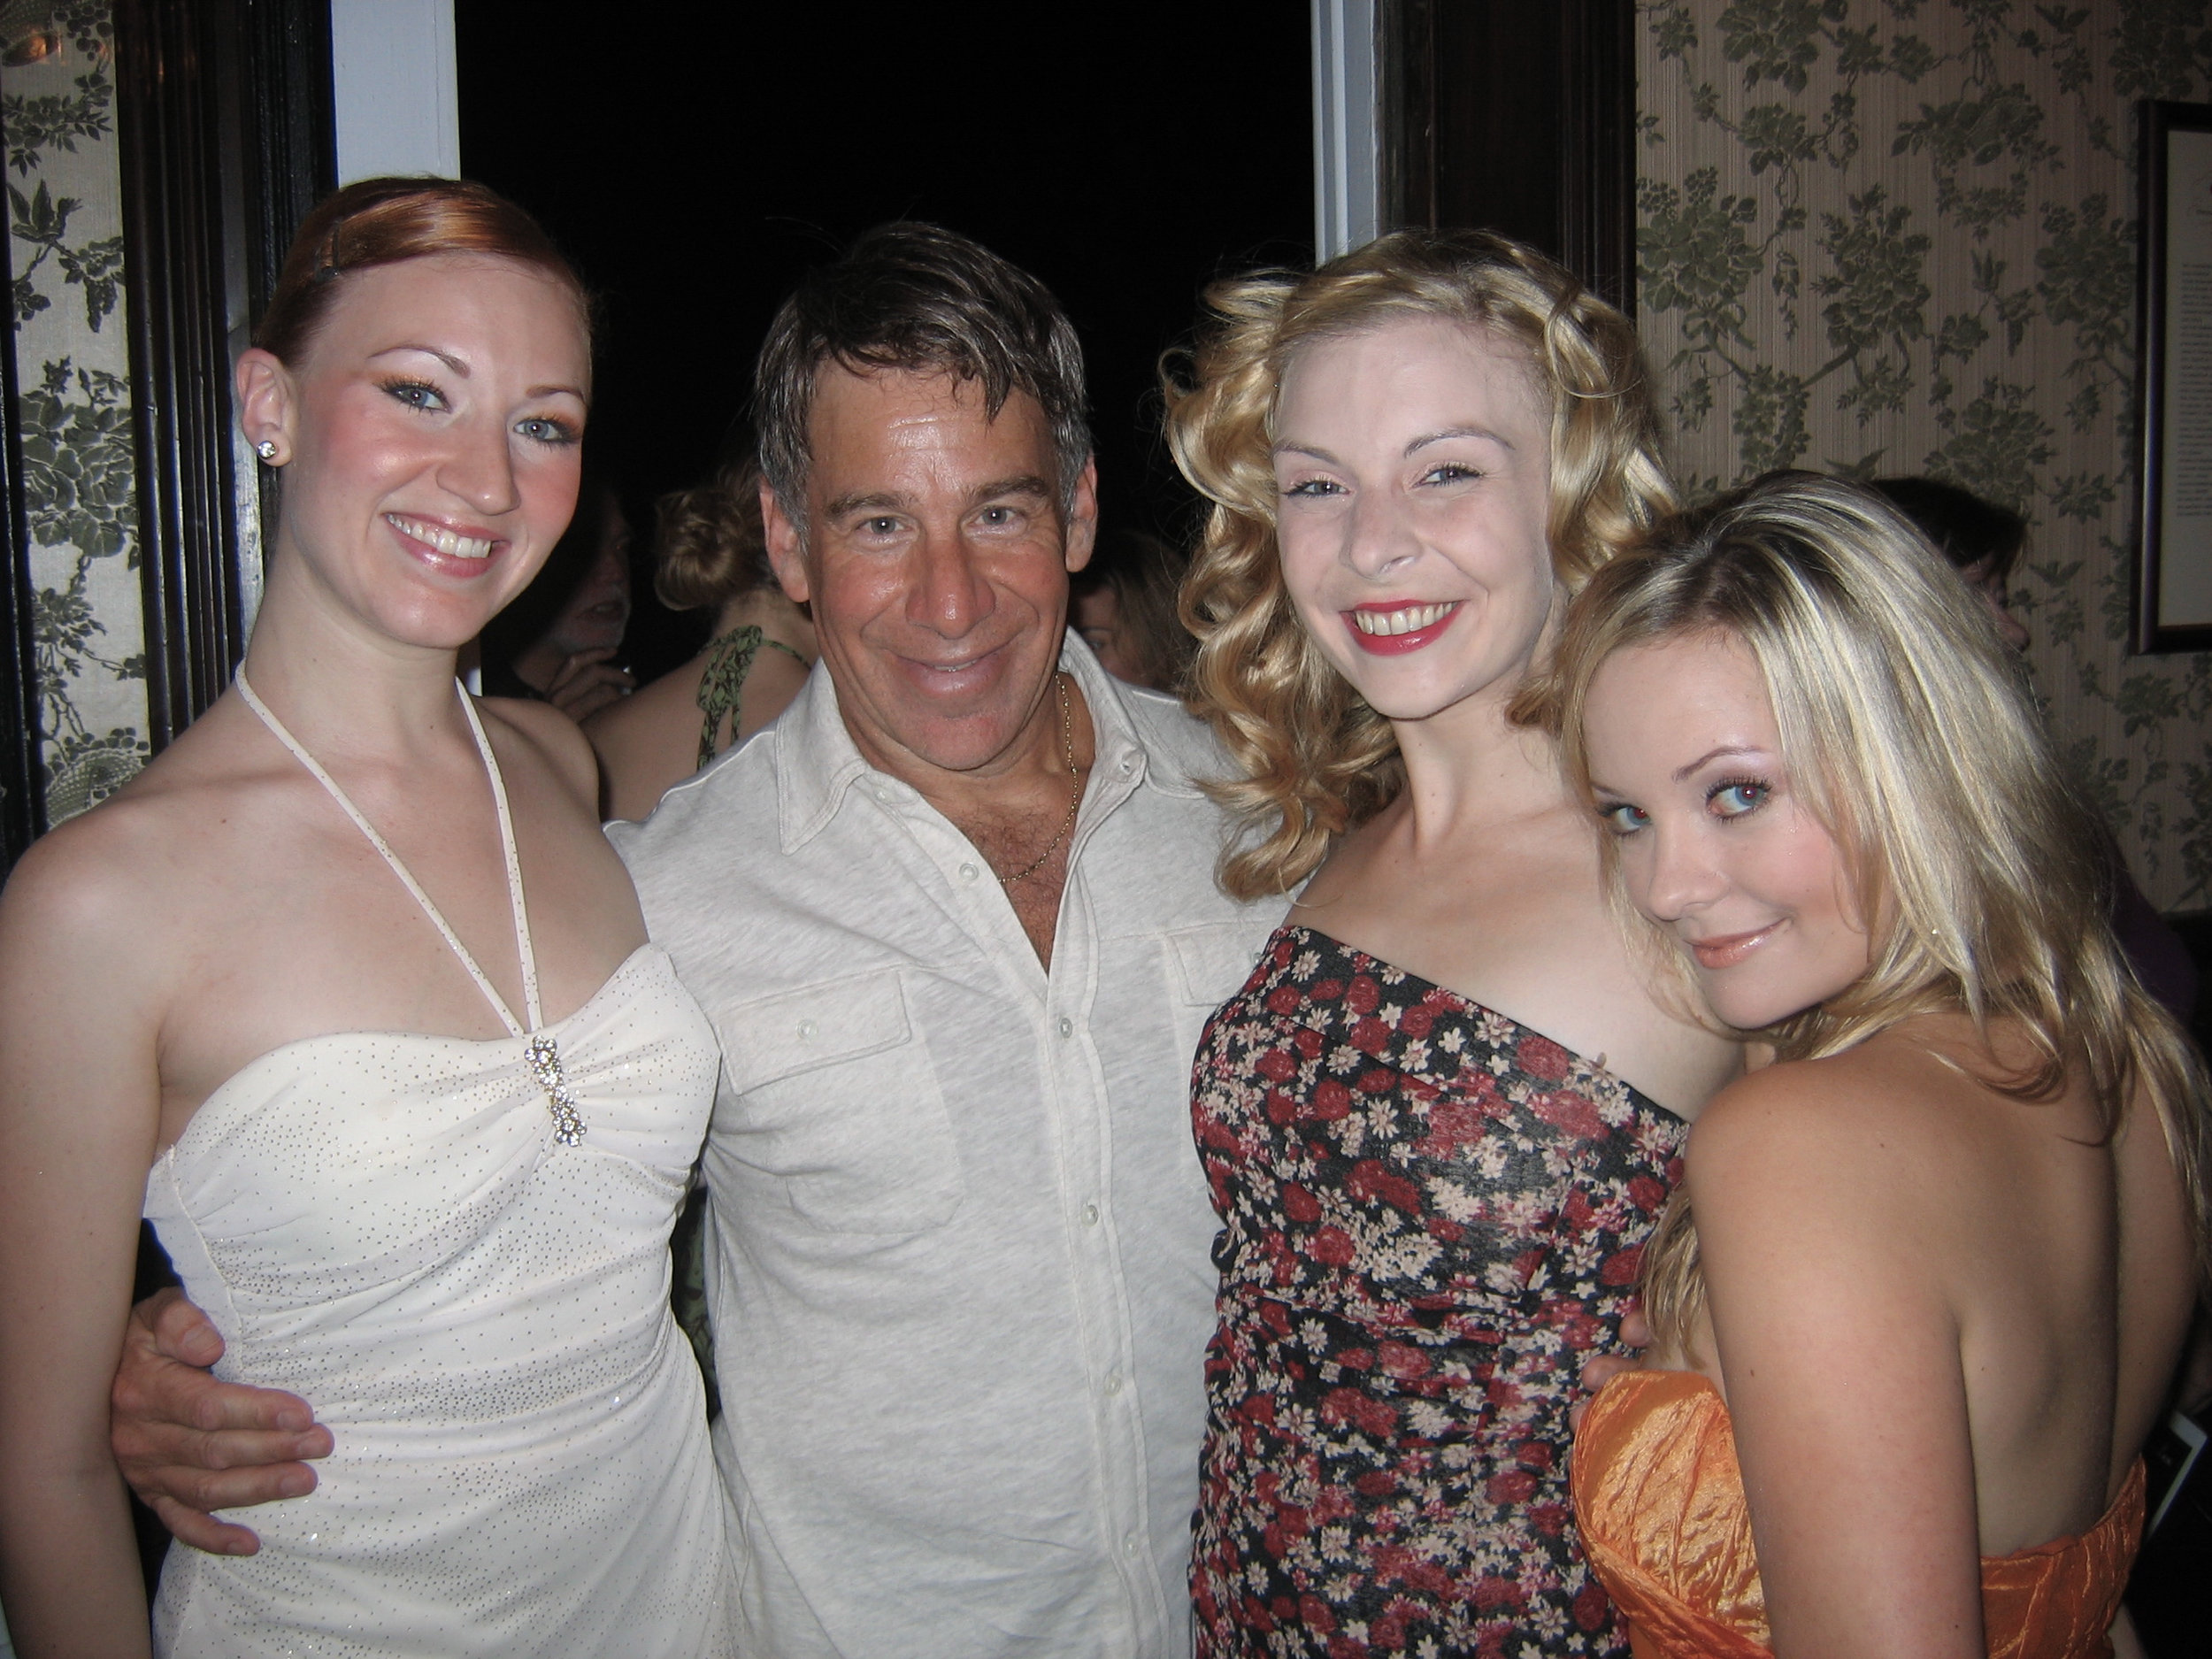 Opening night at Goodspeed, with the prolific Stephen Schwartz.